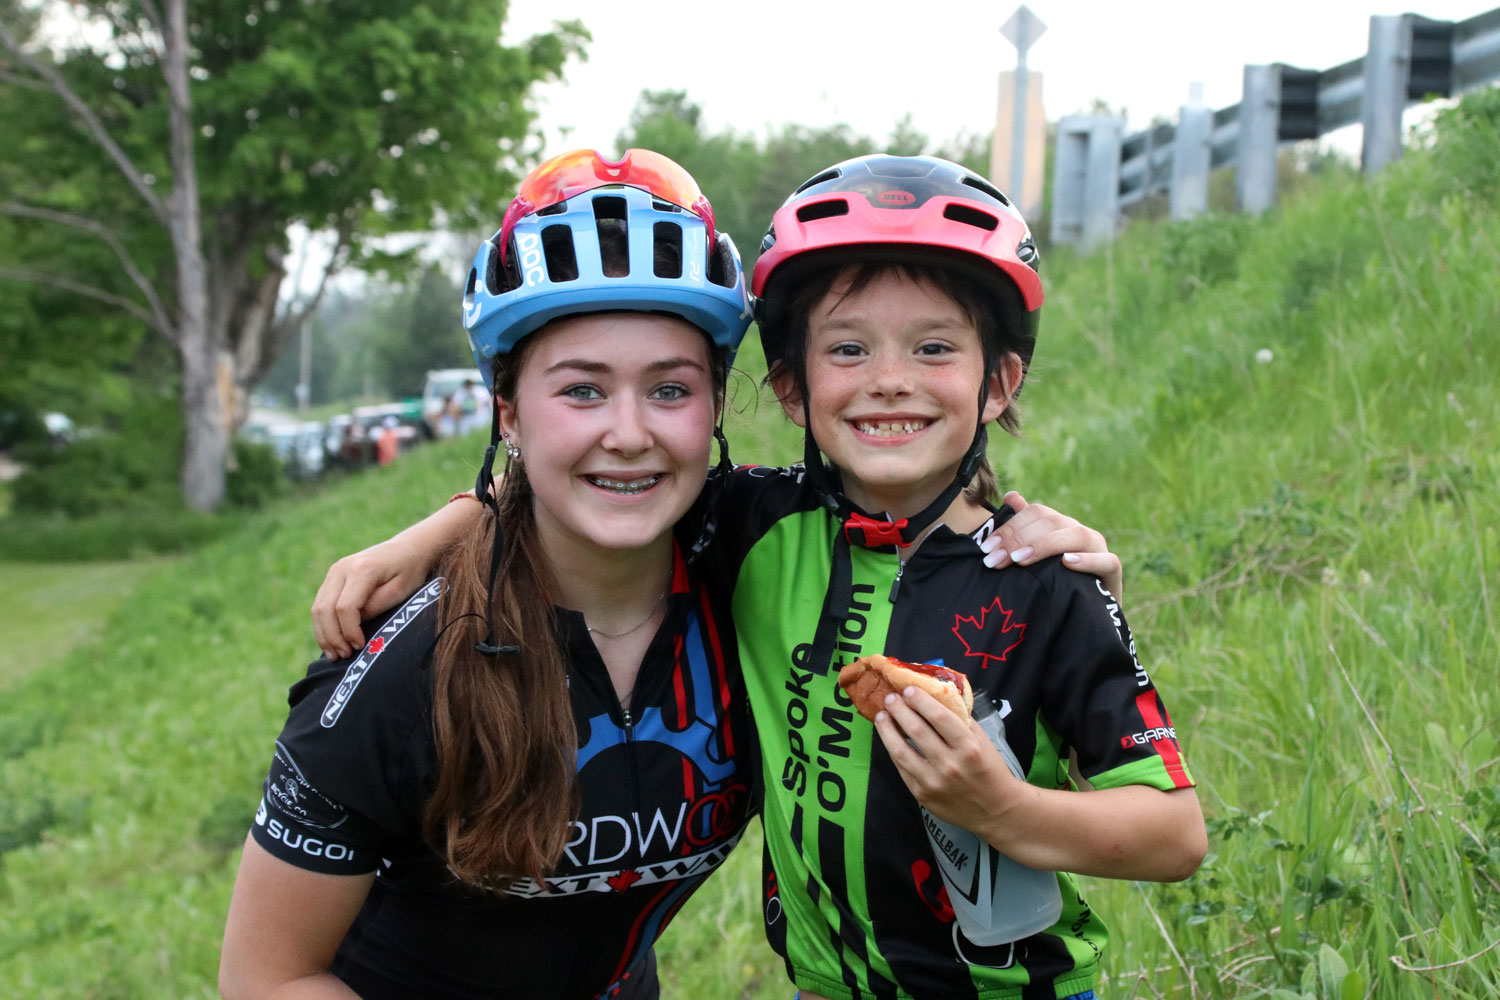 Carys Reid and Kaiden celebrate a great night of racing with friendship and food - two of life's greatest joys. (Along with cycling, of course.)